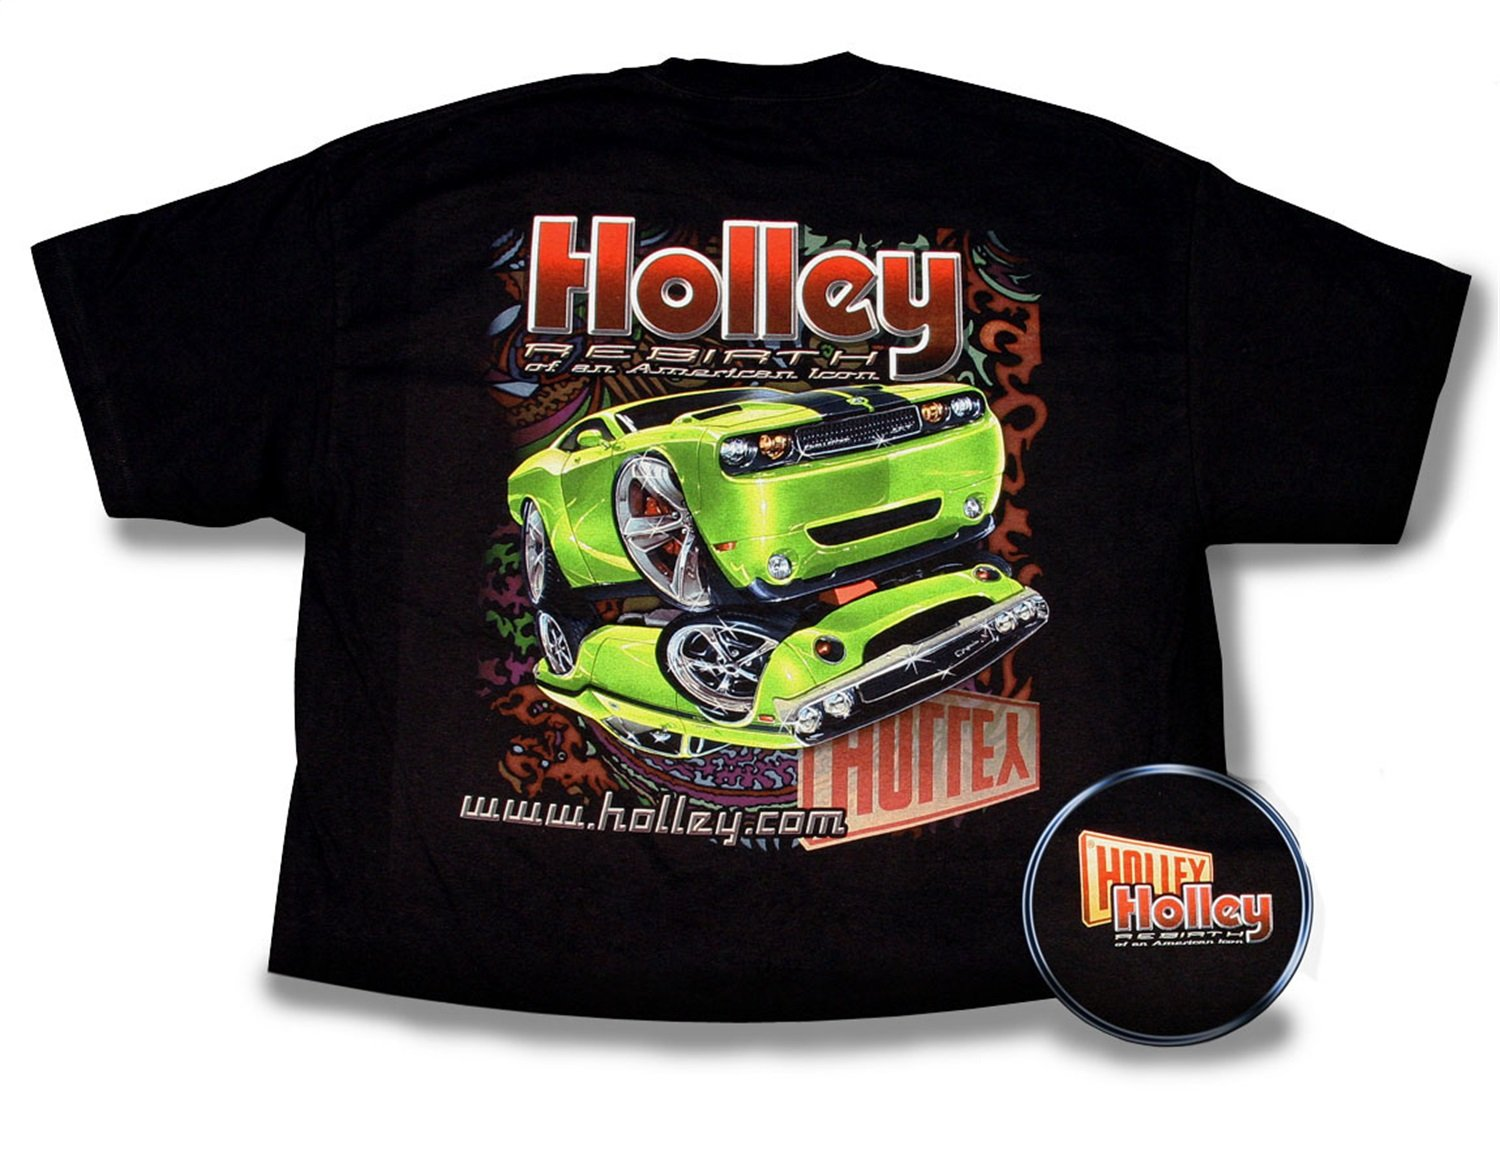 Holley 10007-SMHOL Black Small Fine Art You Can Wear T-Shirt